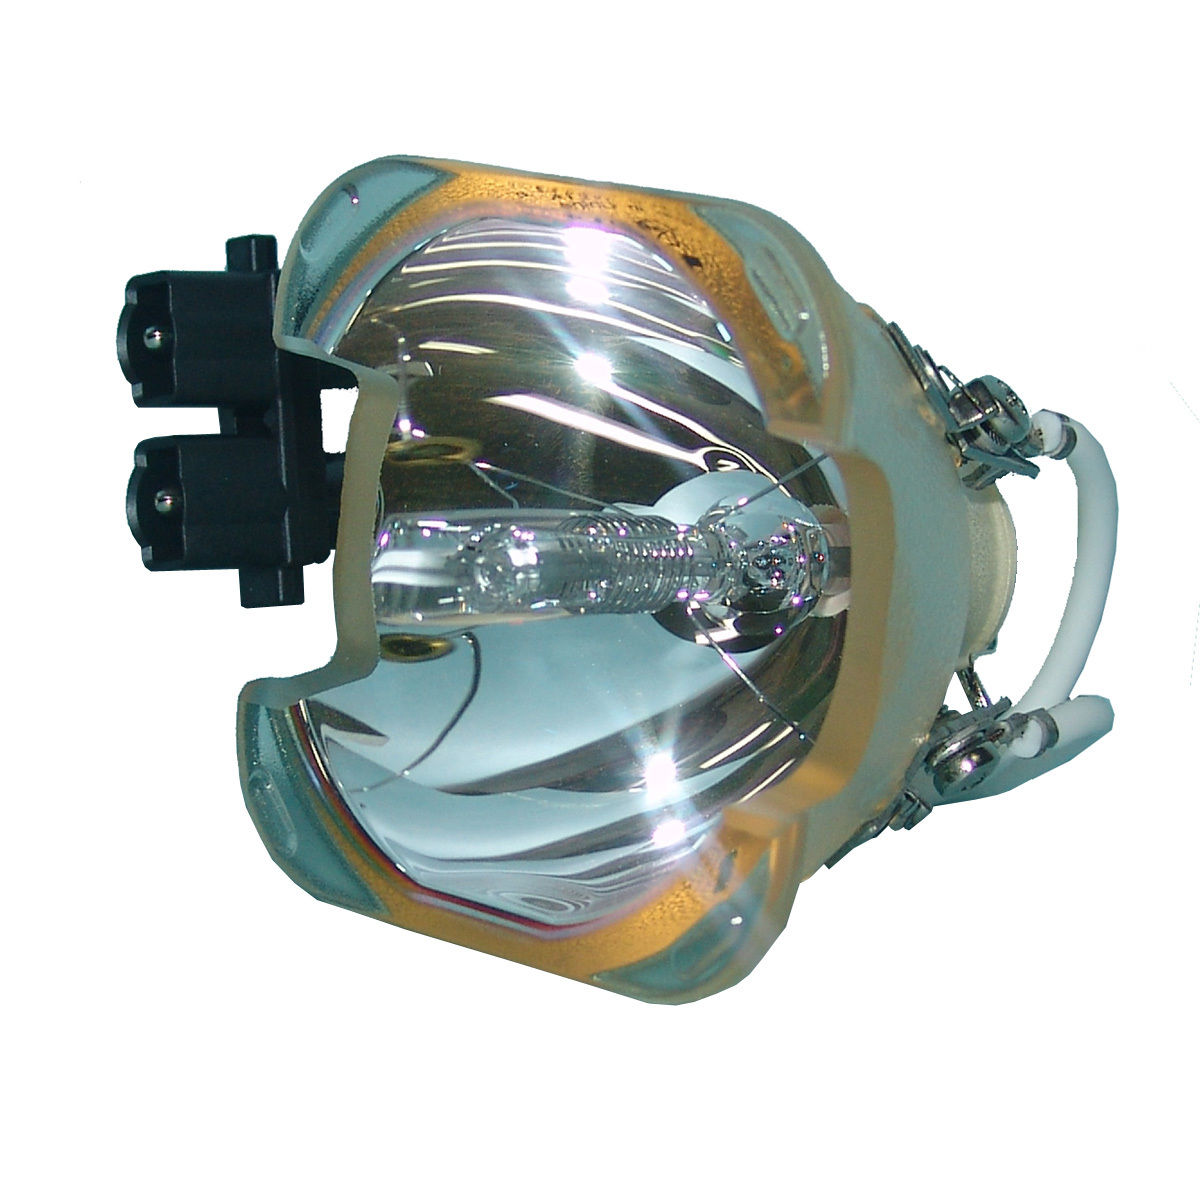 Compatible Bare Bulb BL-FU250E SP.L3703.001 for OPTOMA THEME-S H76 H78 H77 H79  H78DC3 Projector Lamp bulb without housing compatible bare bulb bl fu250d blfu250d sp 81d01 001 for optoma theme s h57 projector bulb lamp without housing